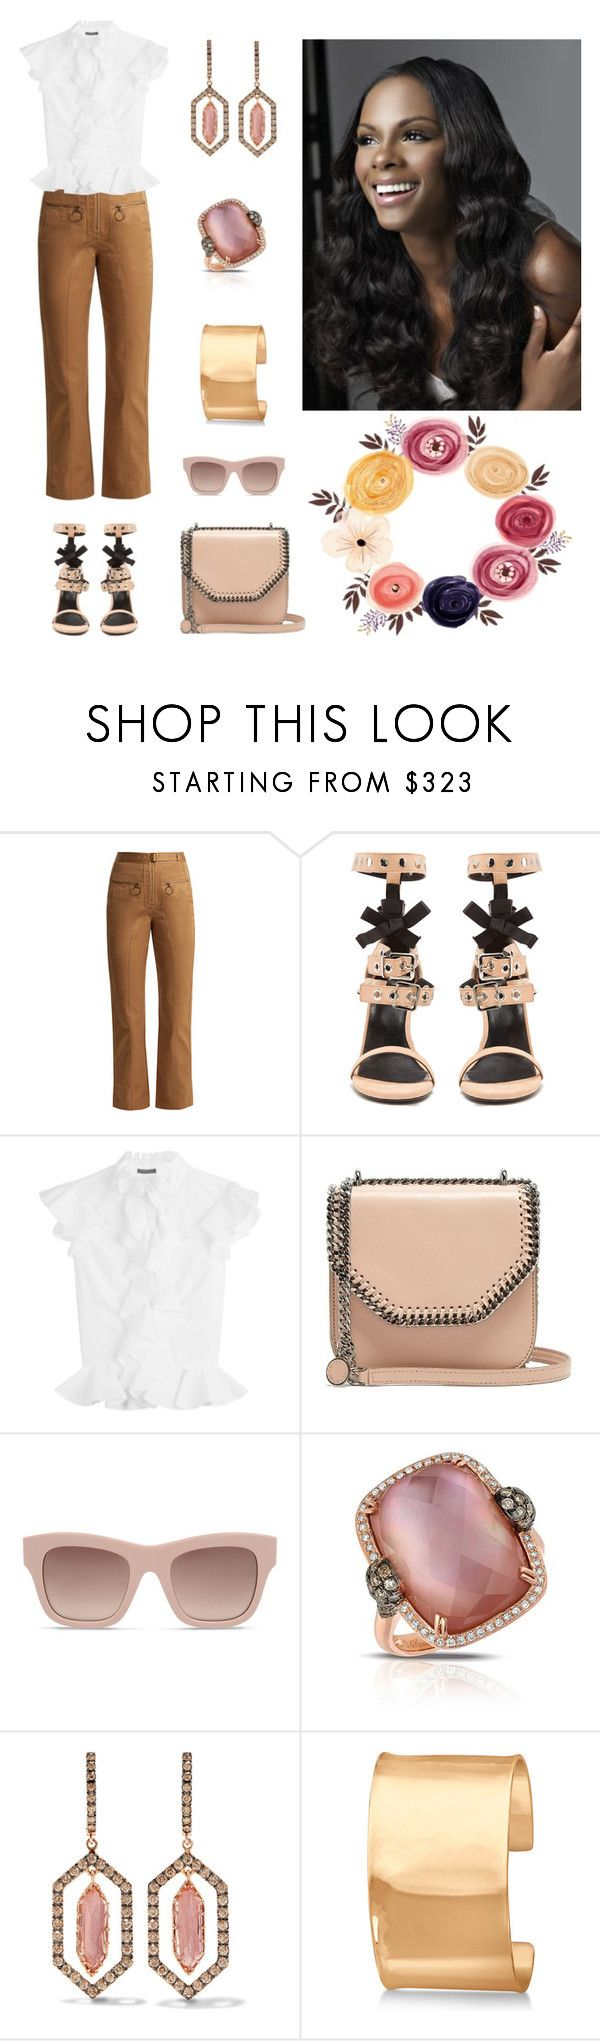 """""""Happy Day"""" by karen-galves ❤ liked on Polyvore featuring self-portrait, Robert Clergerie, Alexander McQueen, STELLA McCARTNEY, Marco Moore, Larkspur & Hawk and Allurez"""